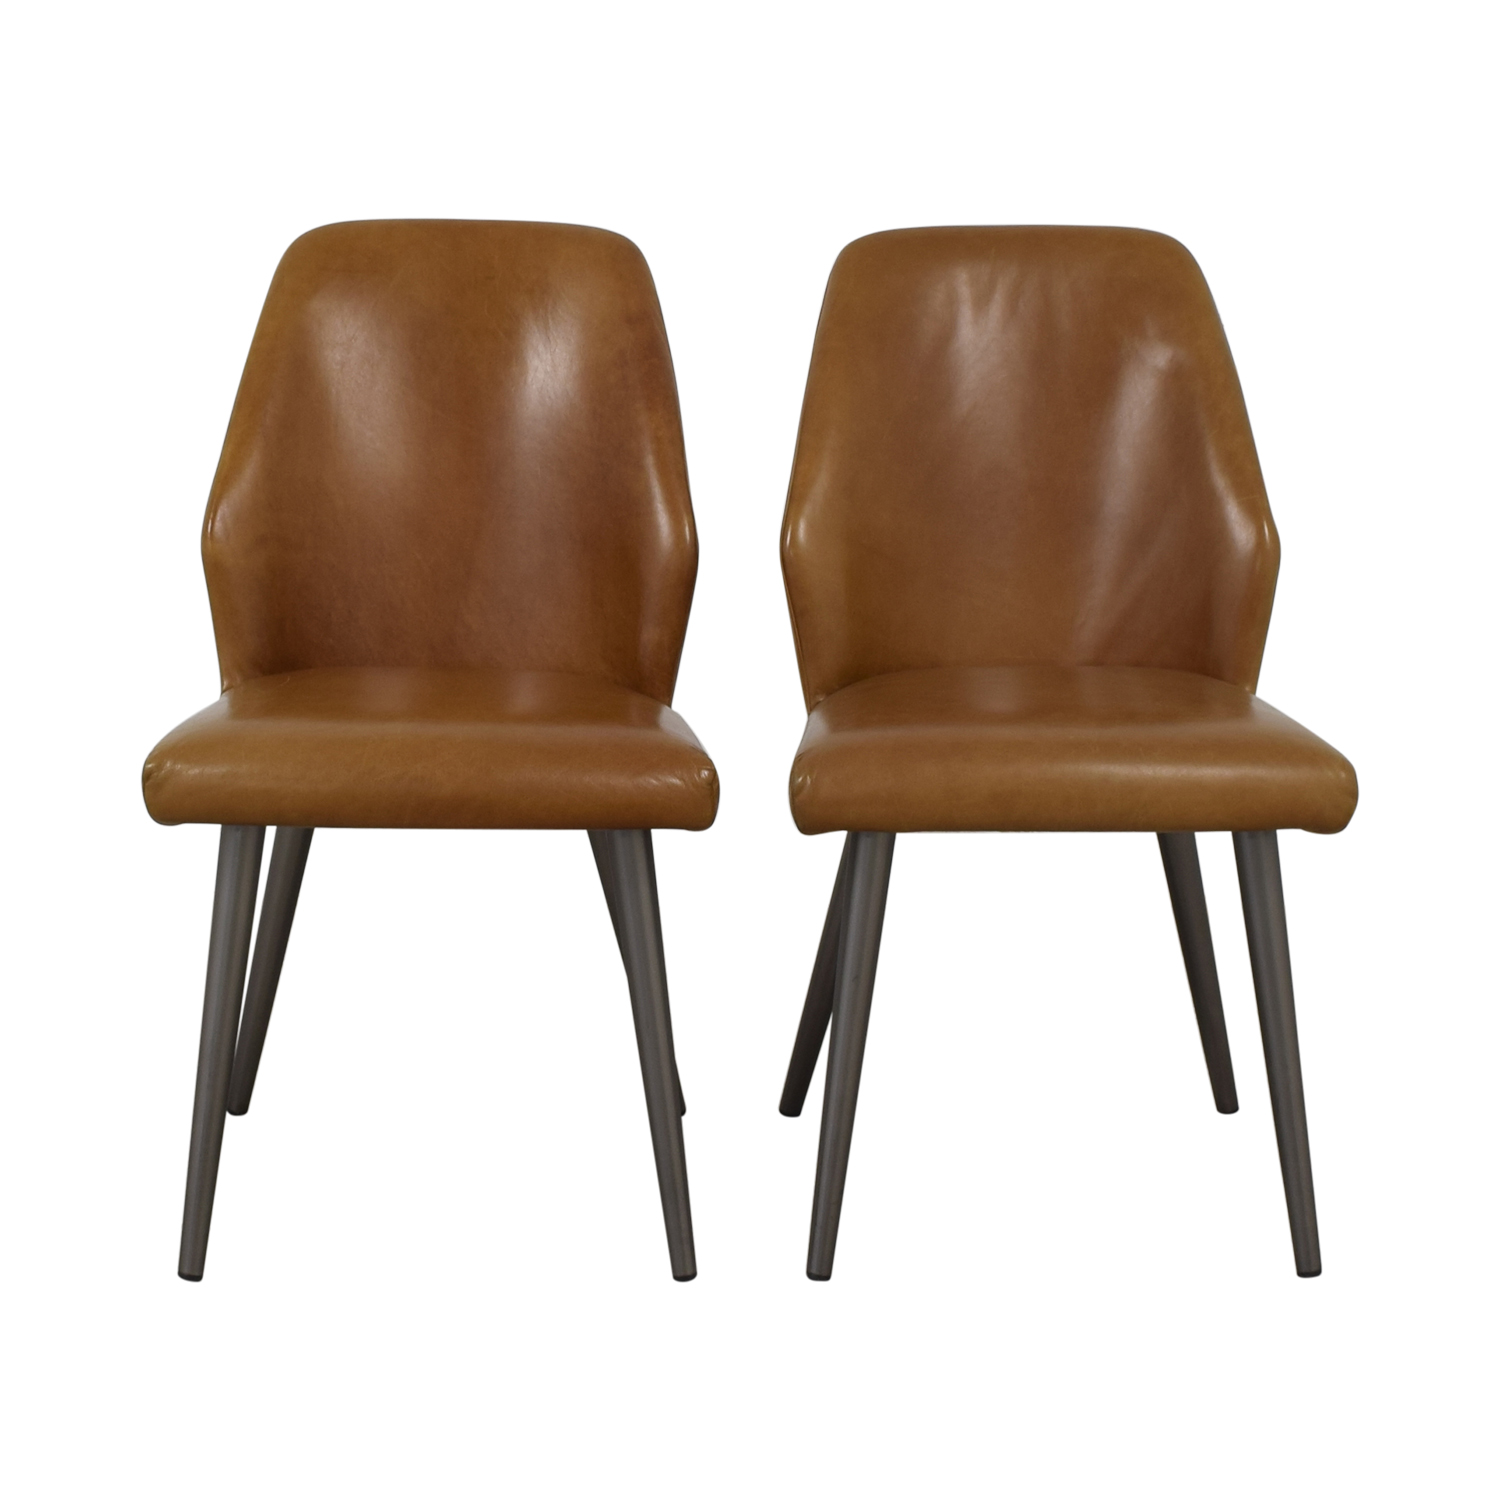 West Elm West Elm Crawford Leather Dining Chair in Saddle dimensions